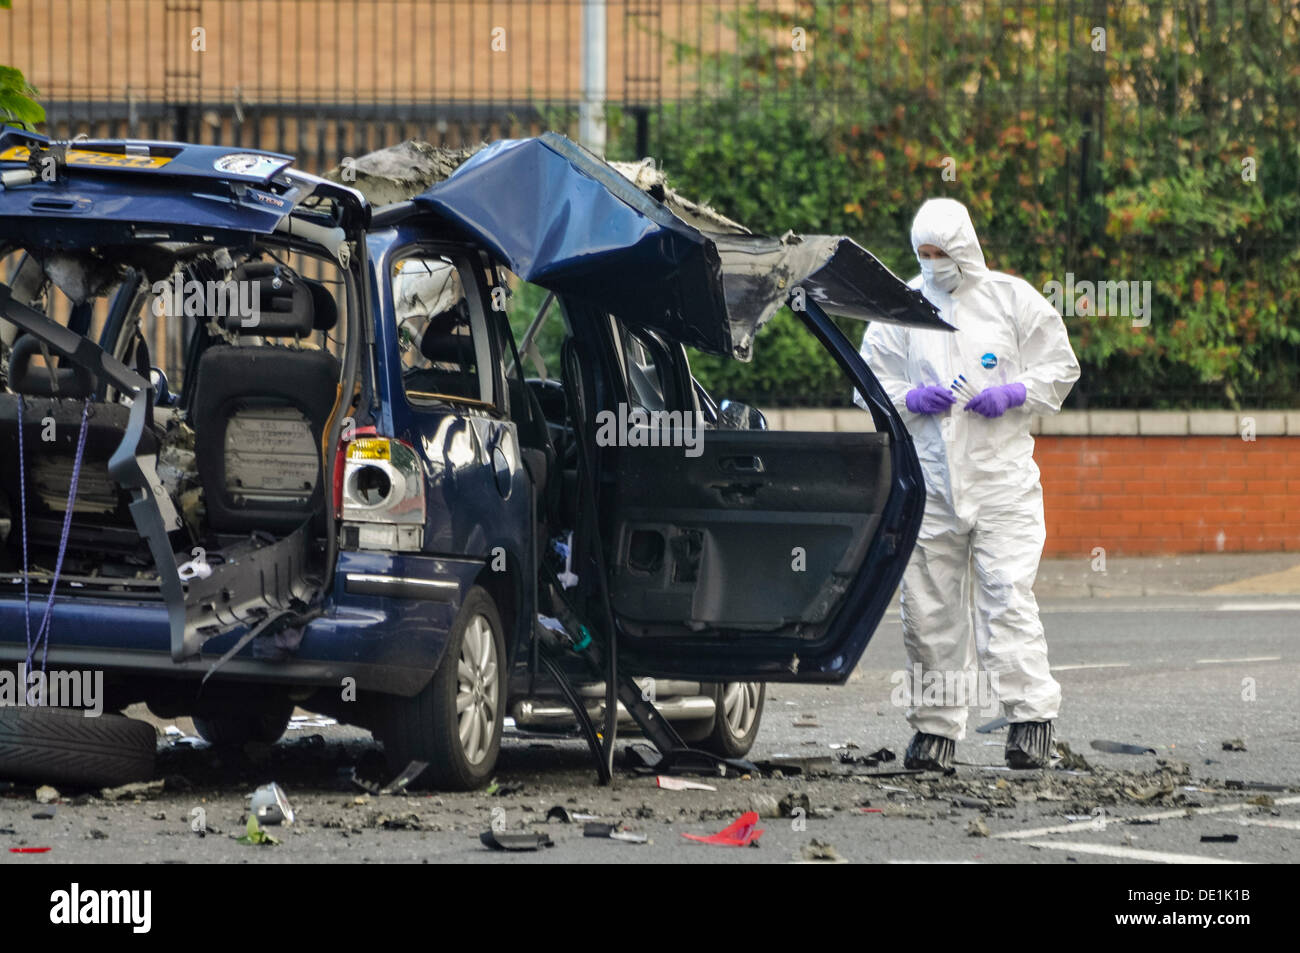 Belfast, Northern Ireland. 10th September 2013 - A PSNI forensics officer examines the wreckage of a vehicle which has been destroyed by a bomb. Credit:  Stephen Barnes/Alamy Live News - Stock Image